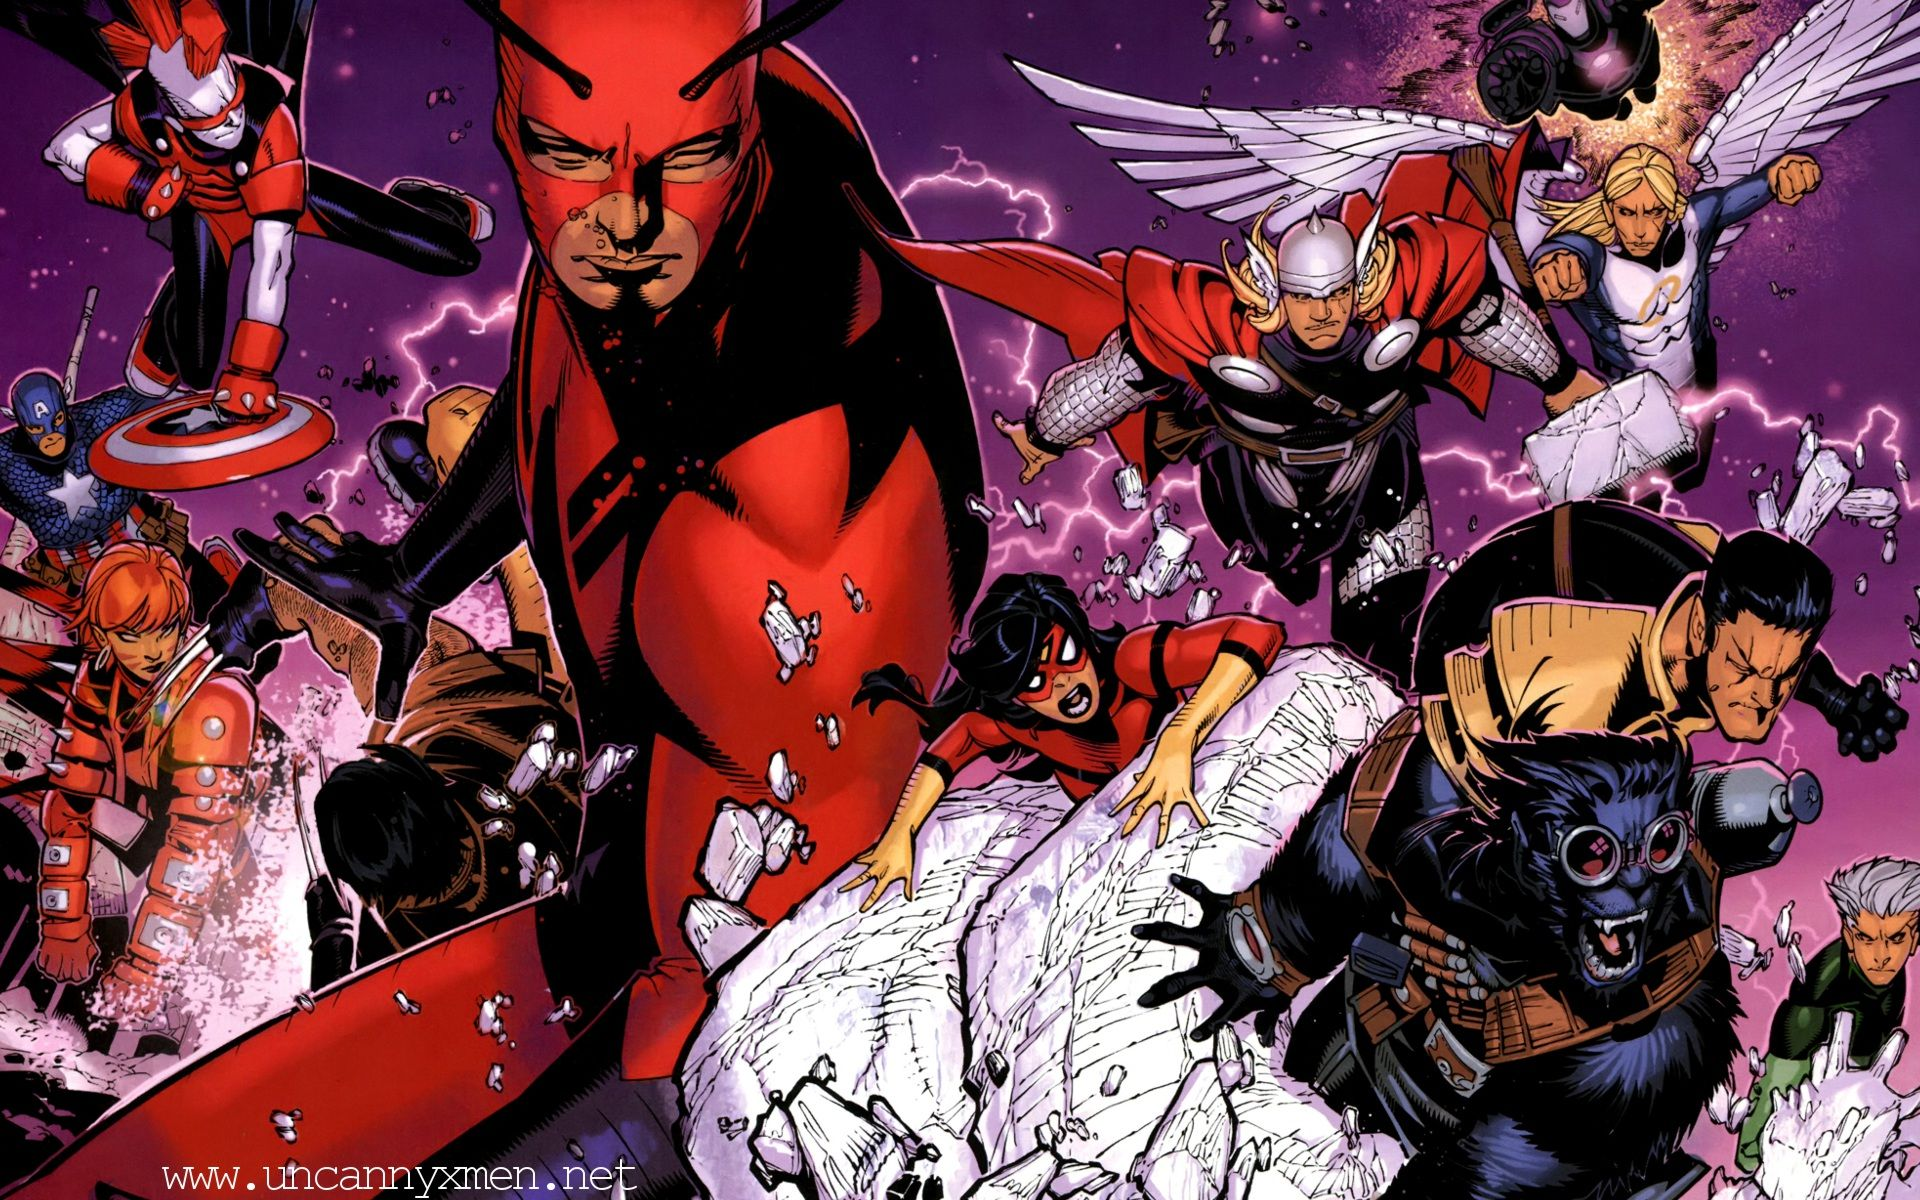 1920x1200 Uncanny X-Men Wallpapers and Background Images - stmed.net